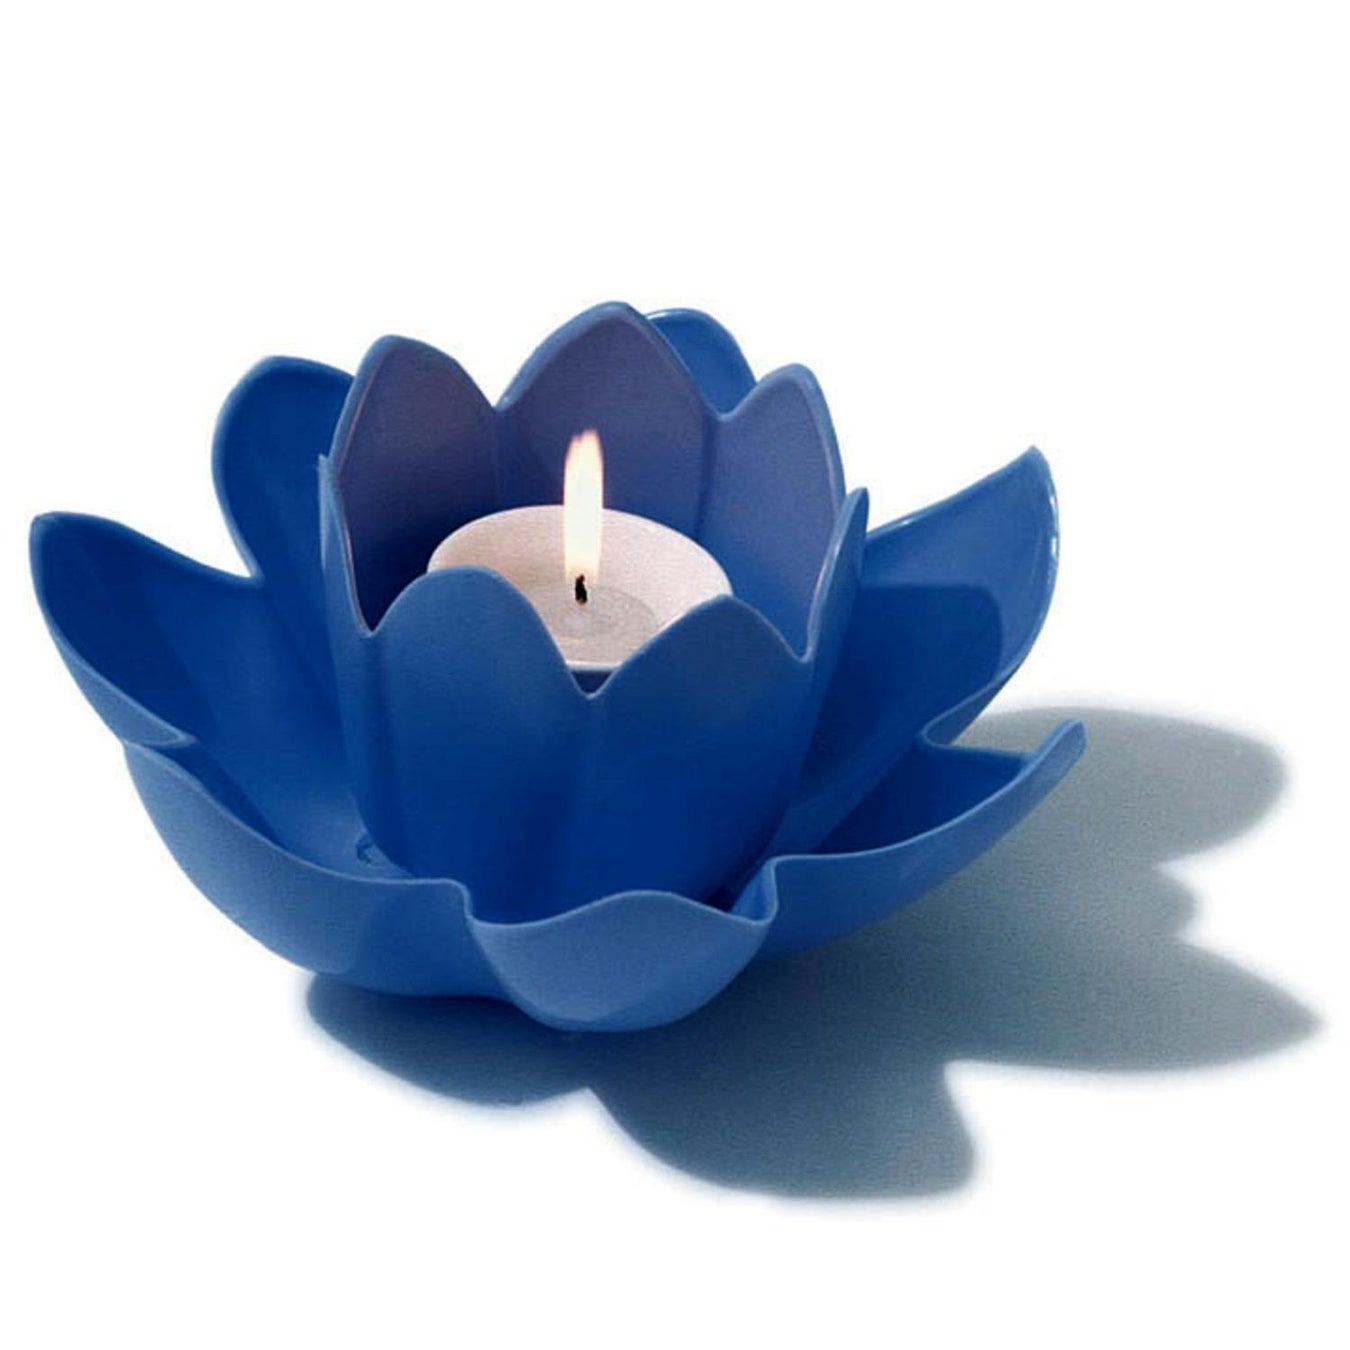 Shop 75 Hydrotools Swimming Pool Or Spa Blue Floating Flower